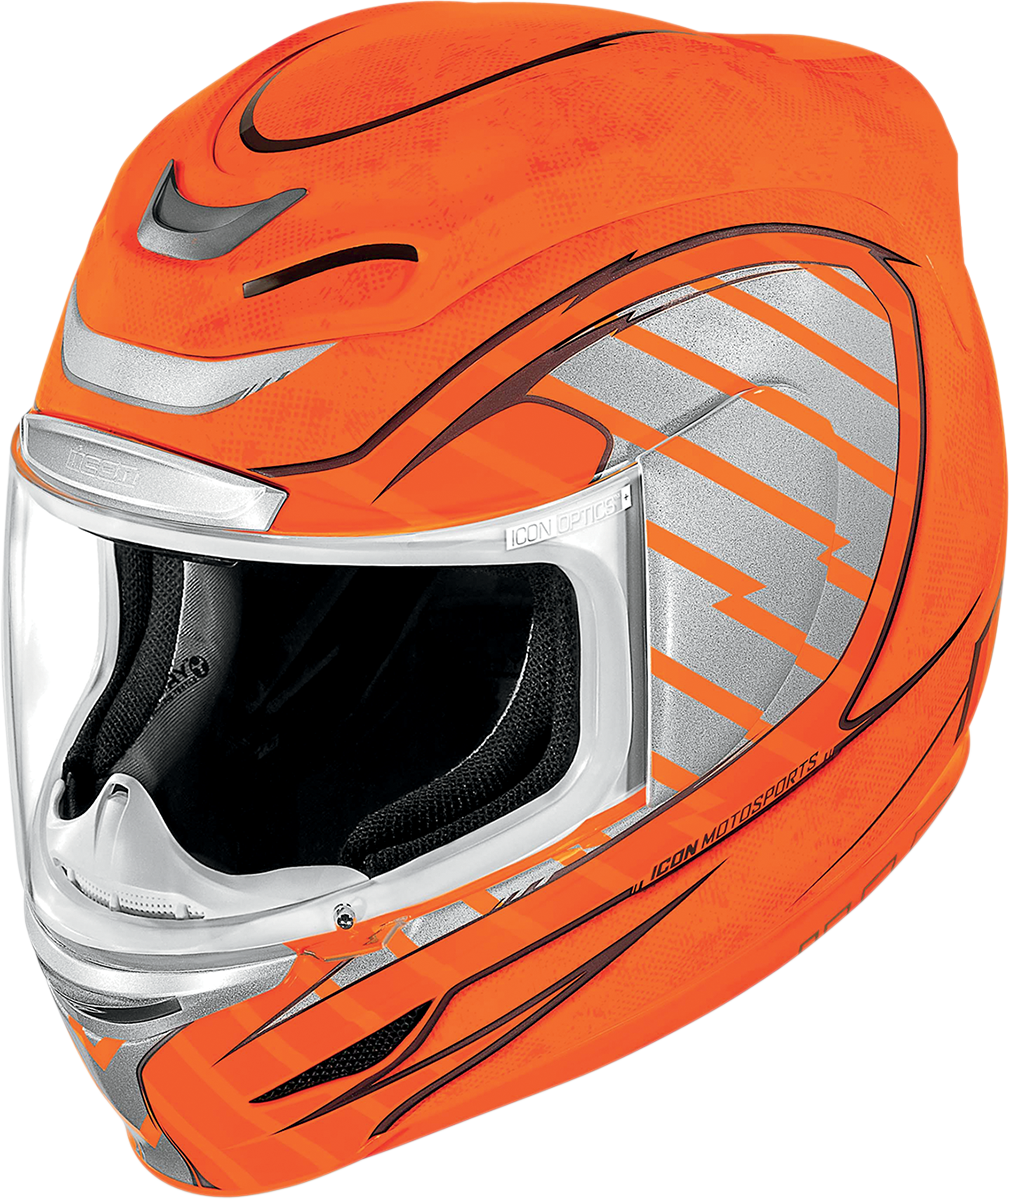 Helmets png images free. Motorcycle clipart orange